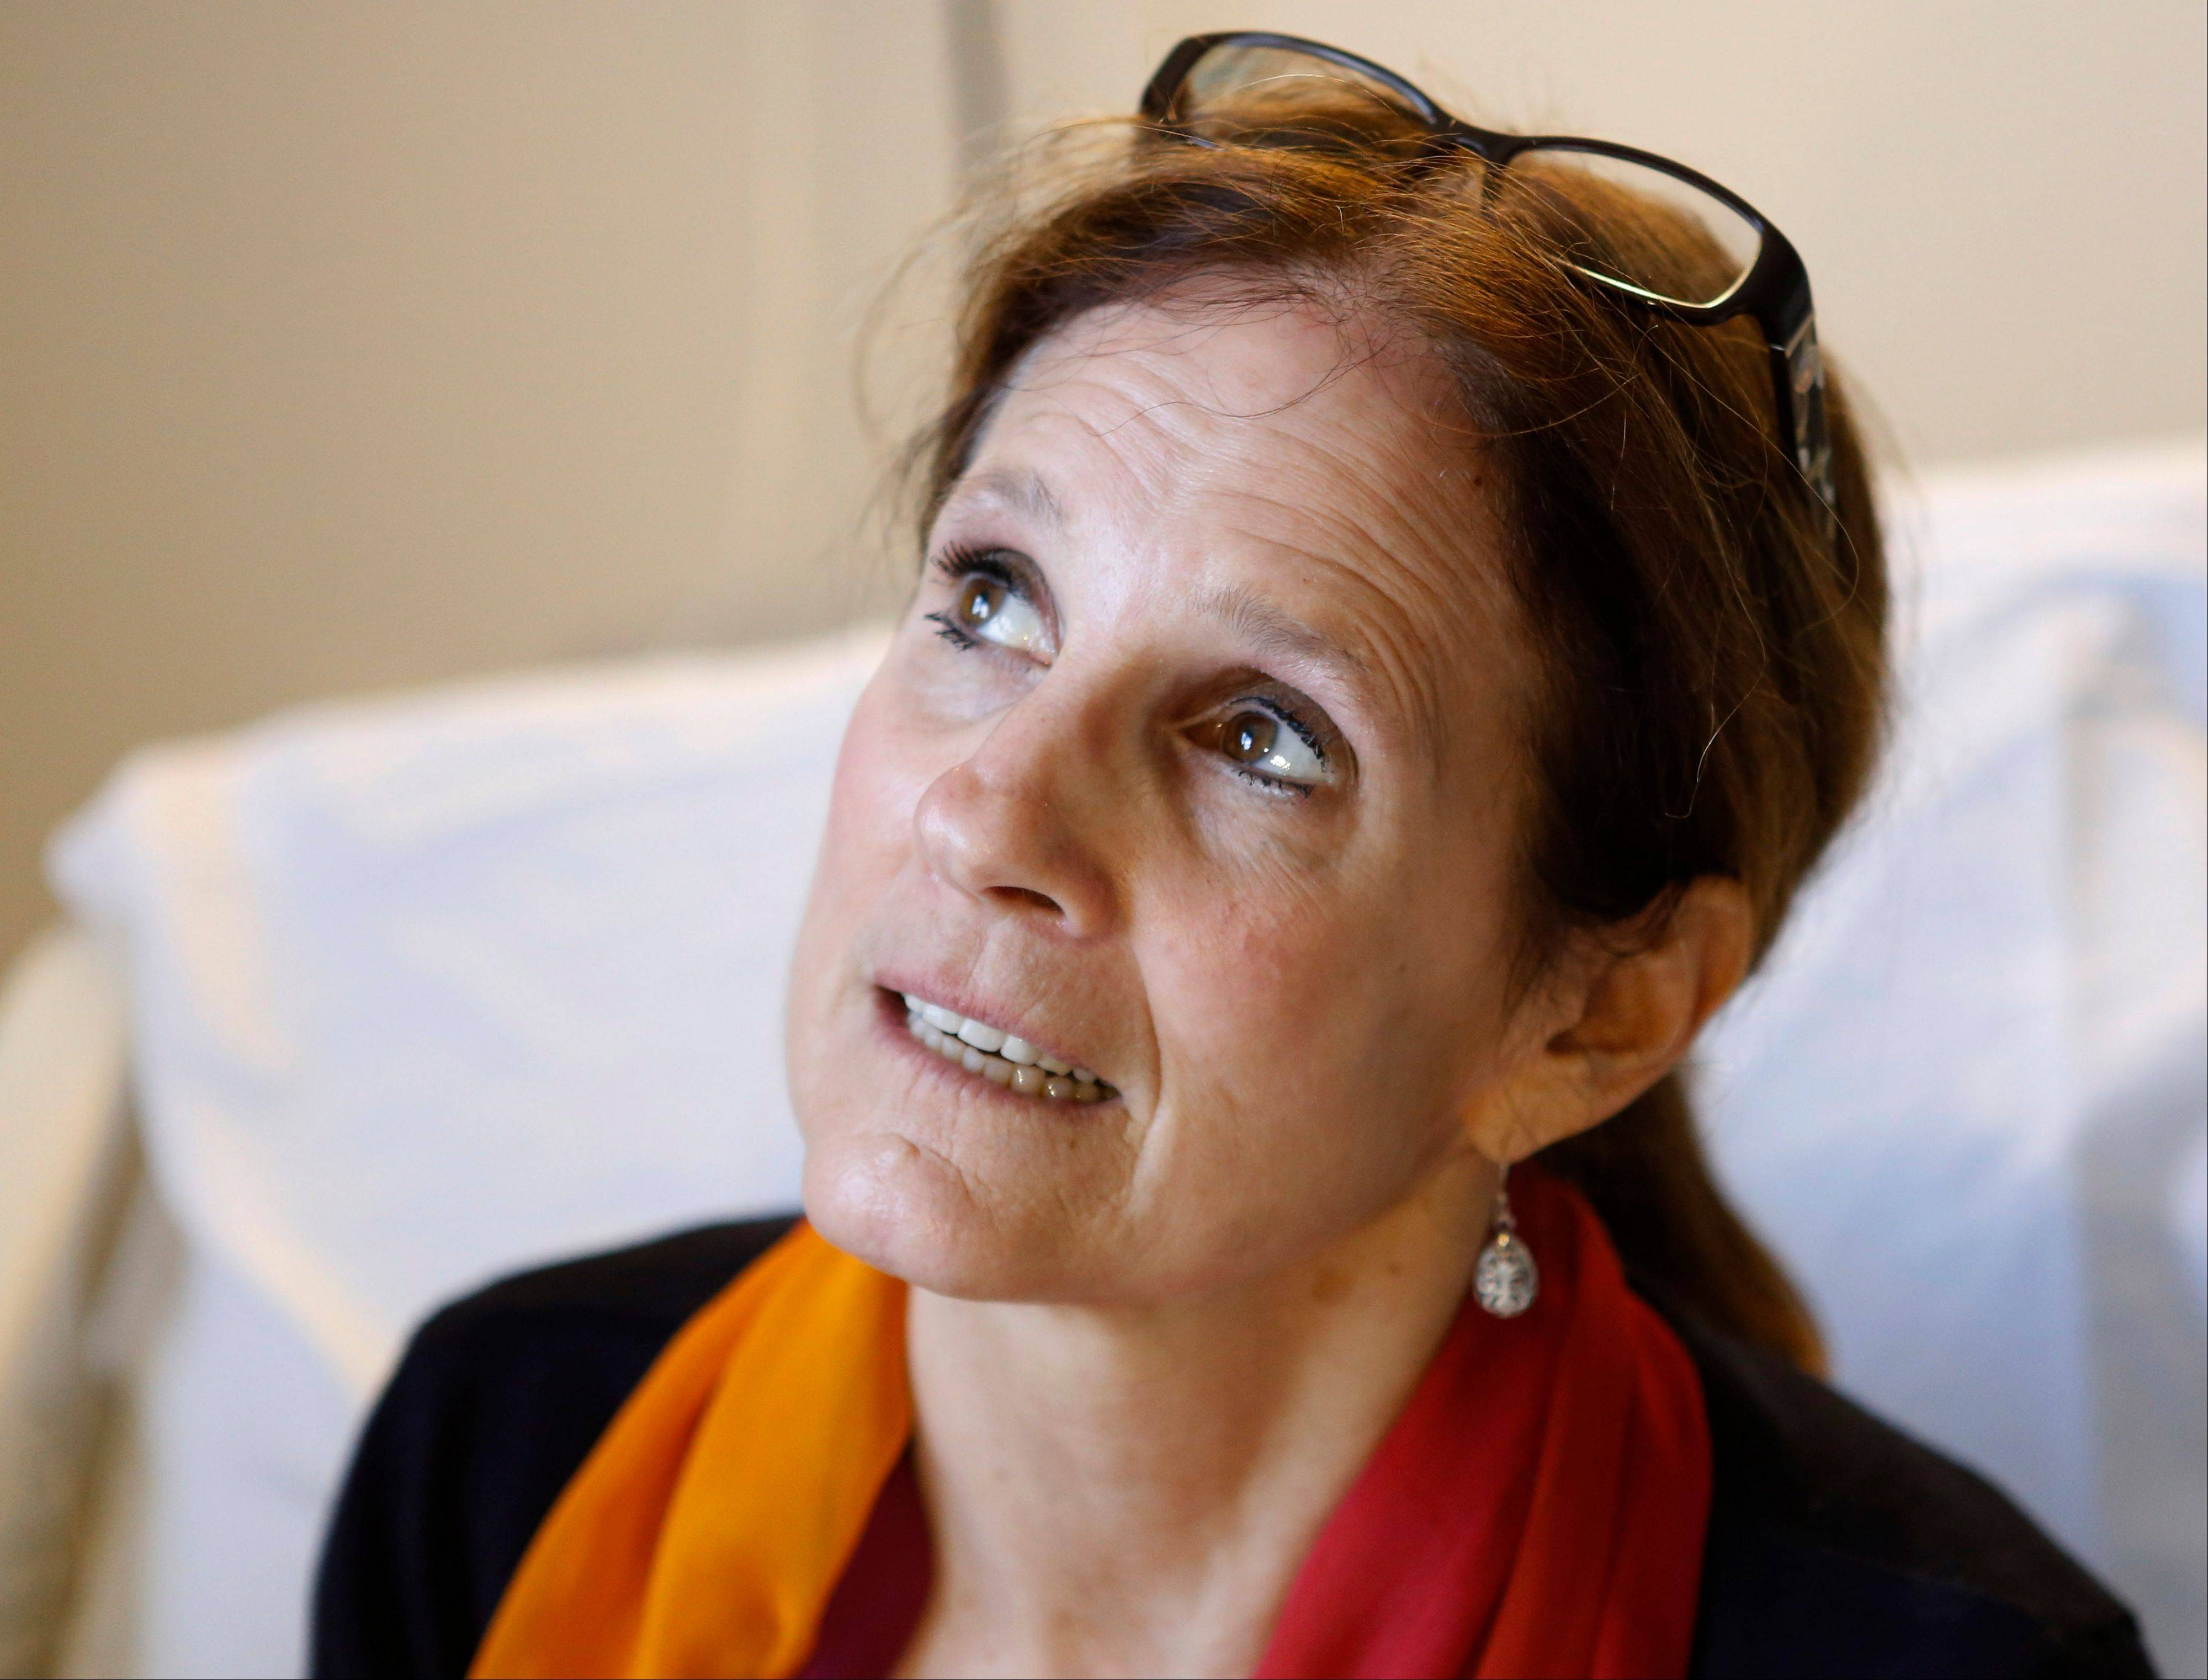 Beth Roche, whose left leg was severely injured by one of the bombs that exploded near the Boston Marathon finish line, sits on her bed at Spaulding Rehabilitation Hospital in Boston, Wednesday, April 24, 2013. The Indiana woman, who ran the Chicago Marathon last fall, was in Boston to watch her daughter Rebecca Roche run the Boston Marathon.